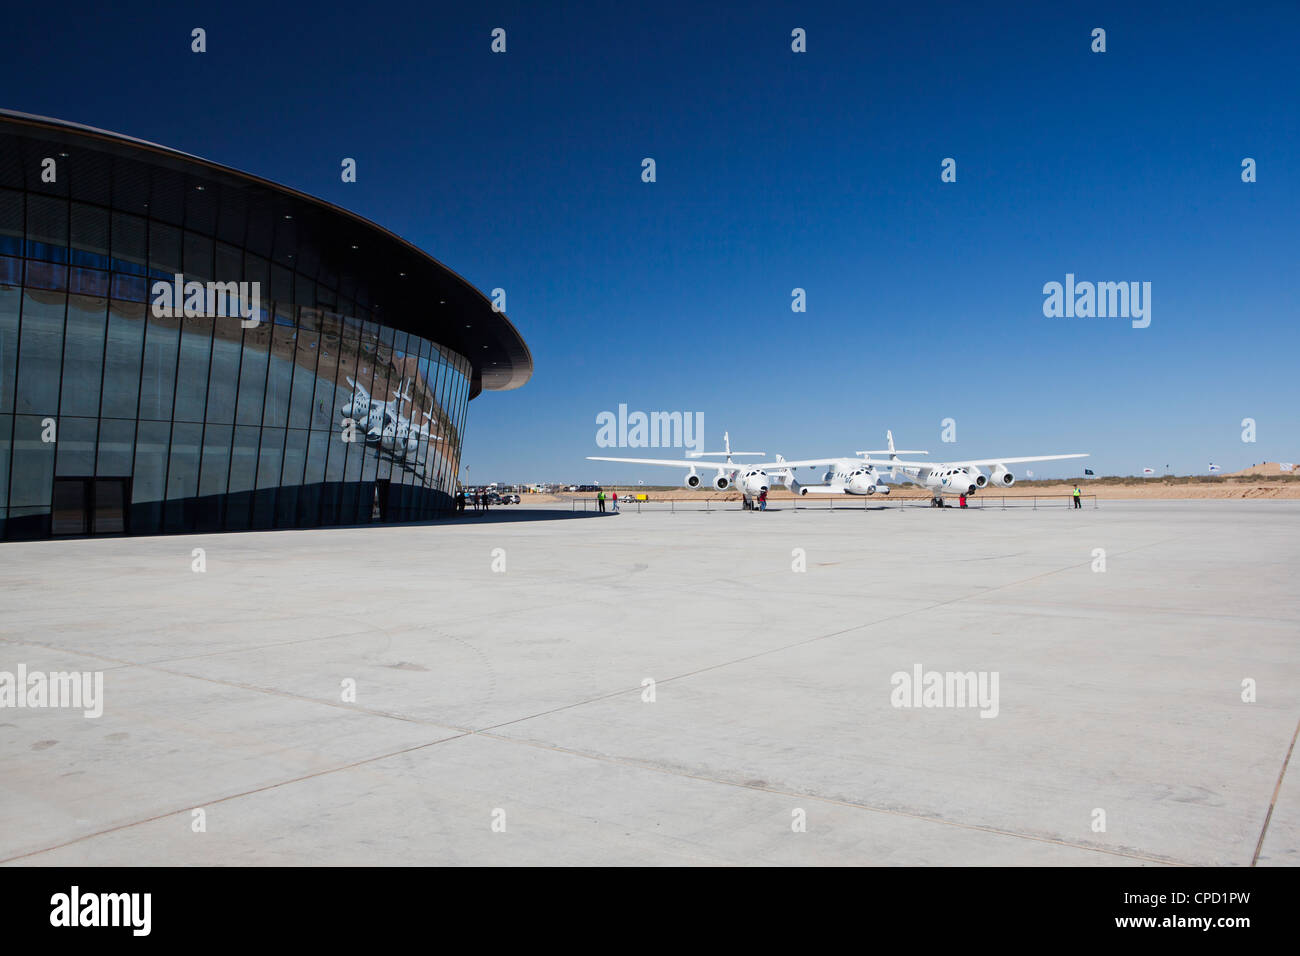 Virgin Galactic's White Knight 2 with Spaceship 2 on the runway at the Virgin Galactic Gateway spaceport, Upham, - Stock Image